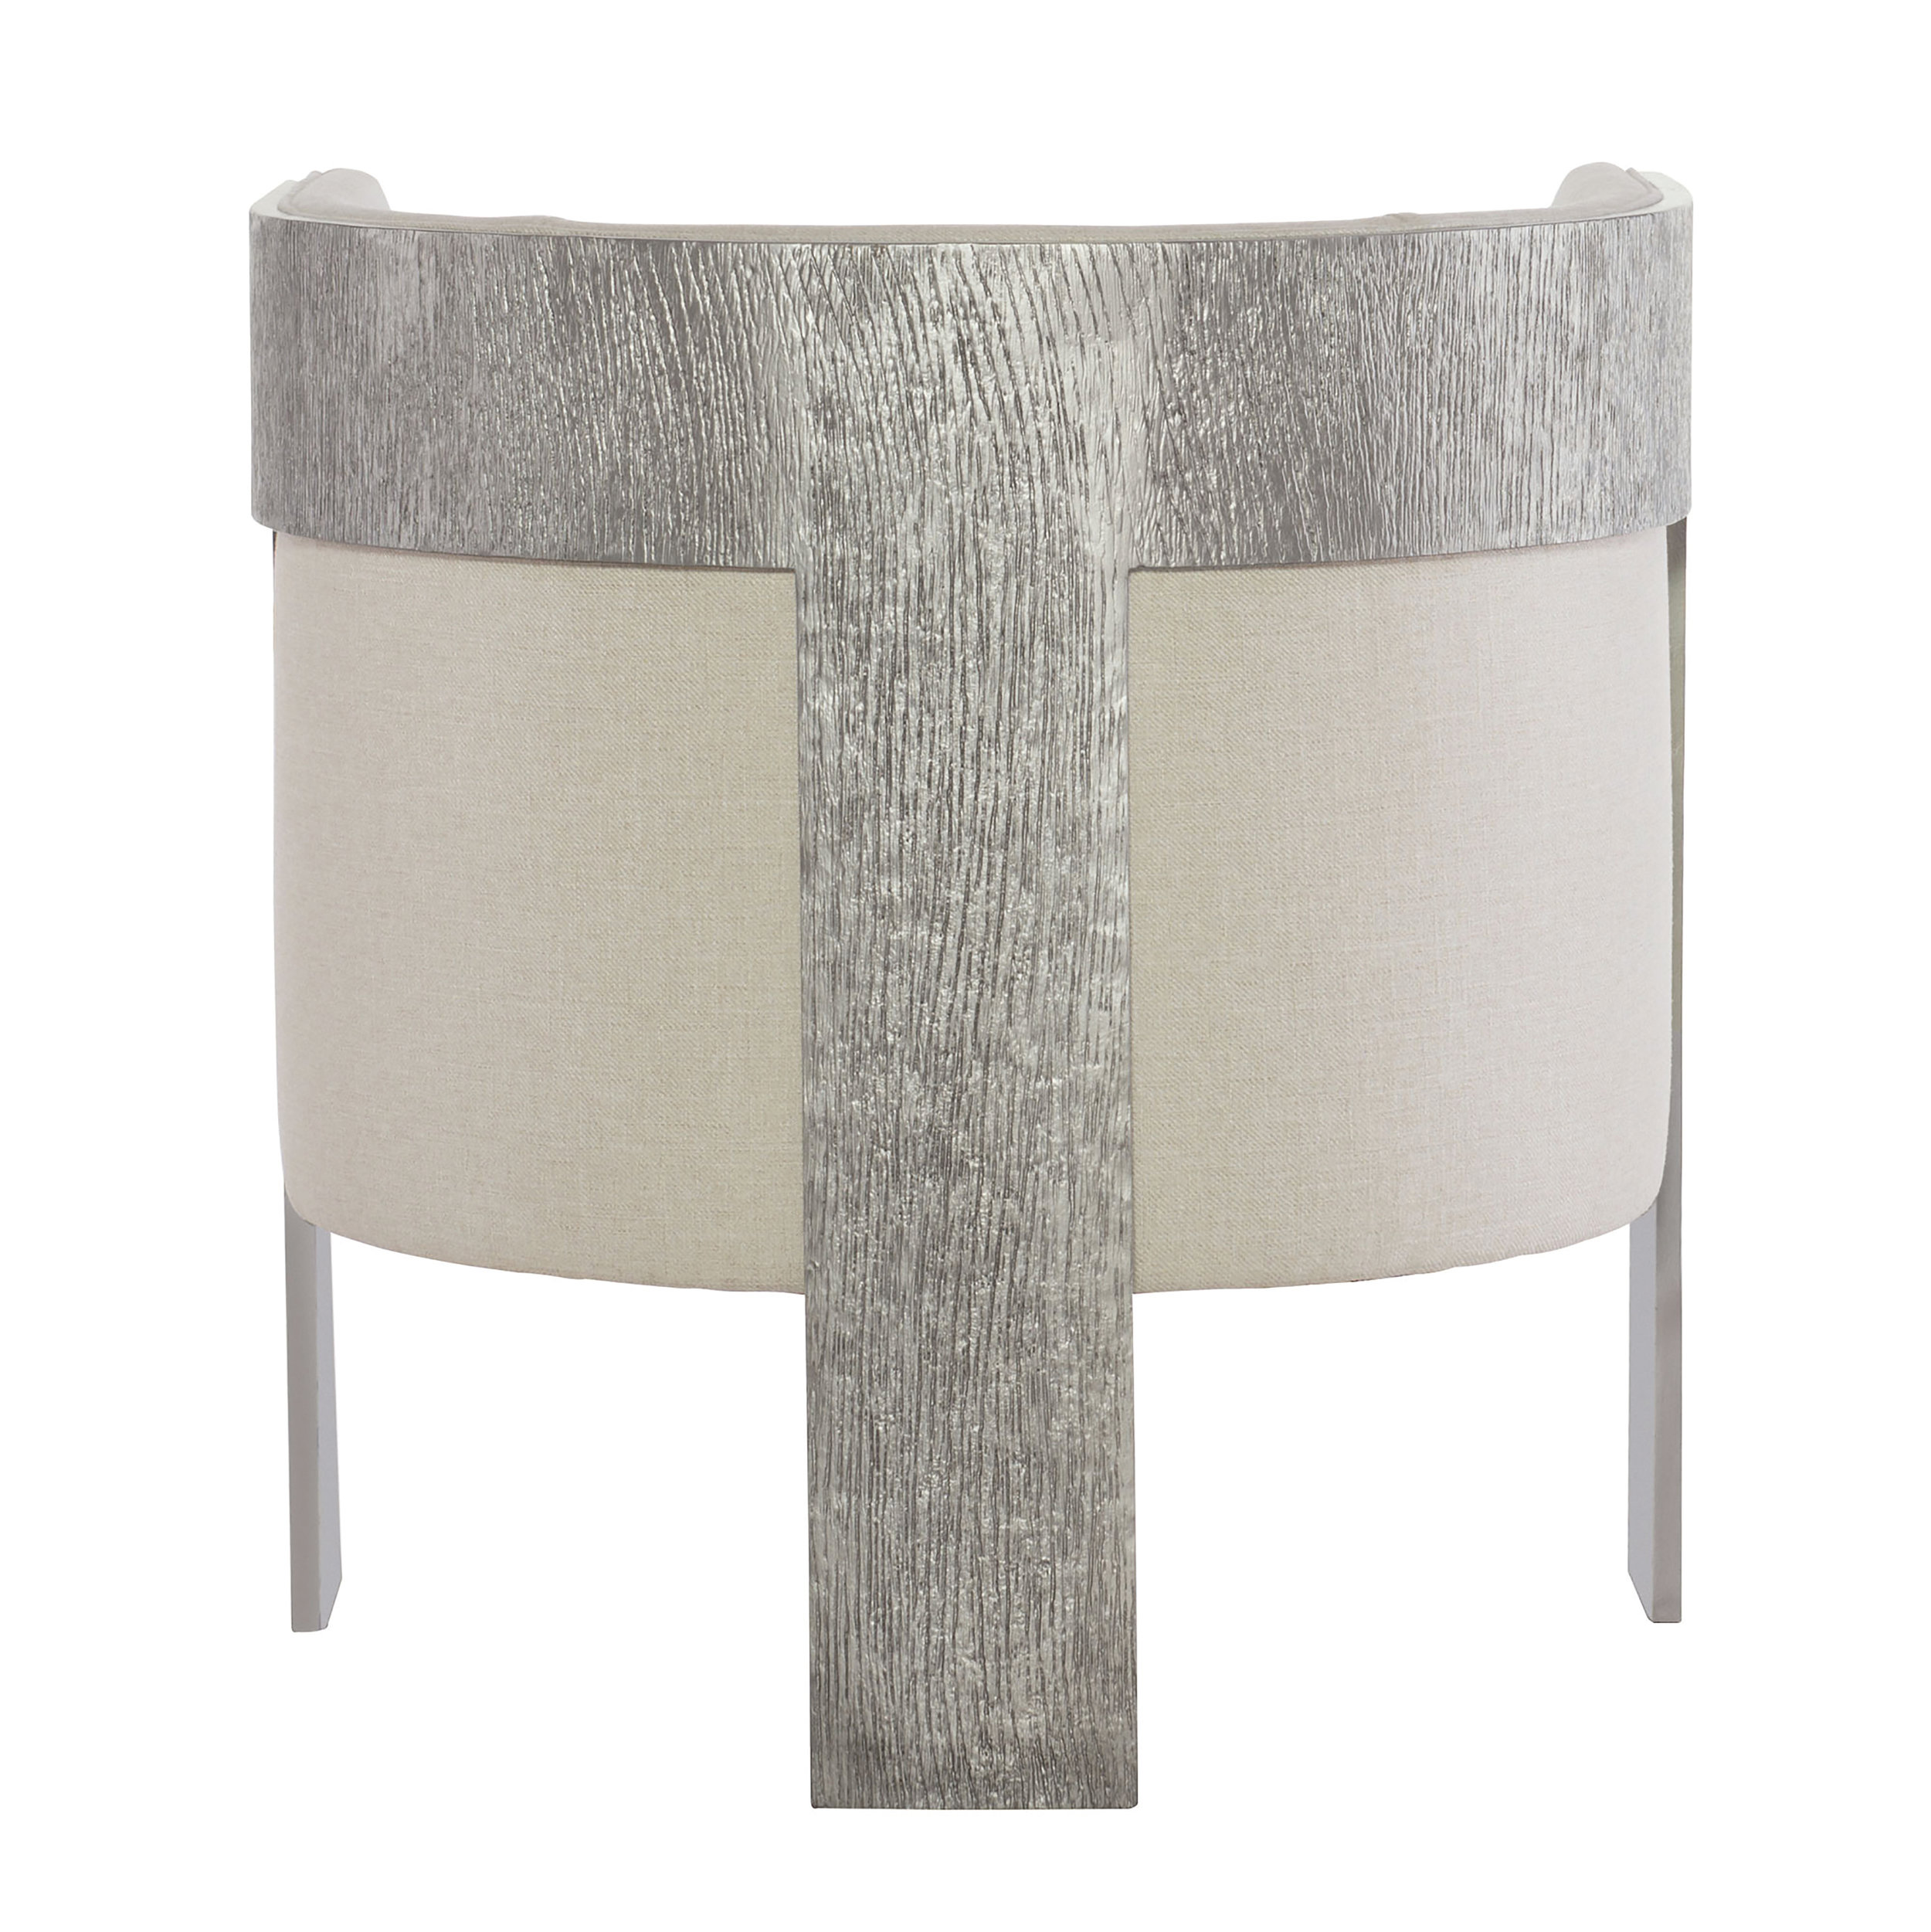 These Cosway chairs are finished in Antique Silver and are covered in creamy, easy-to-clean 100% polyester fabric.